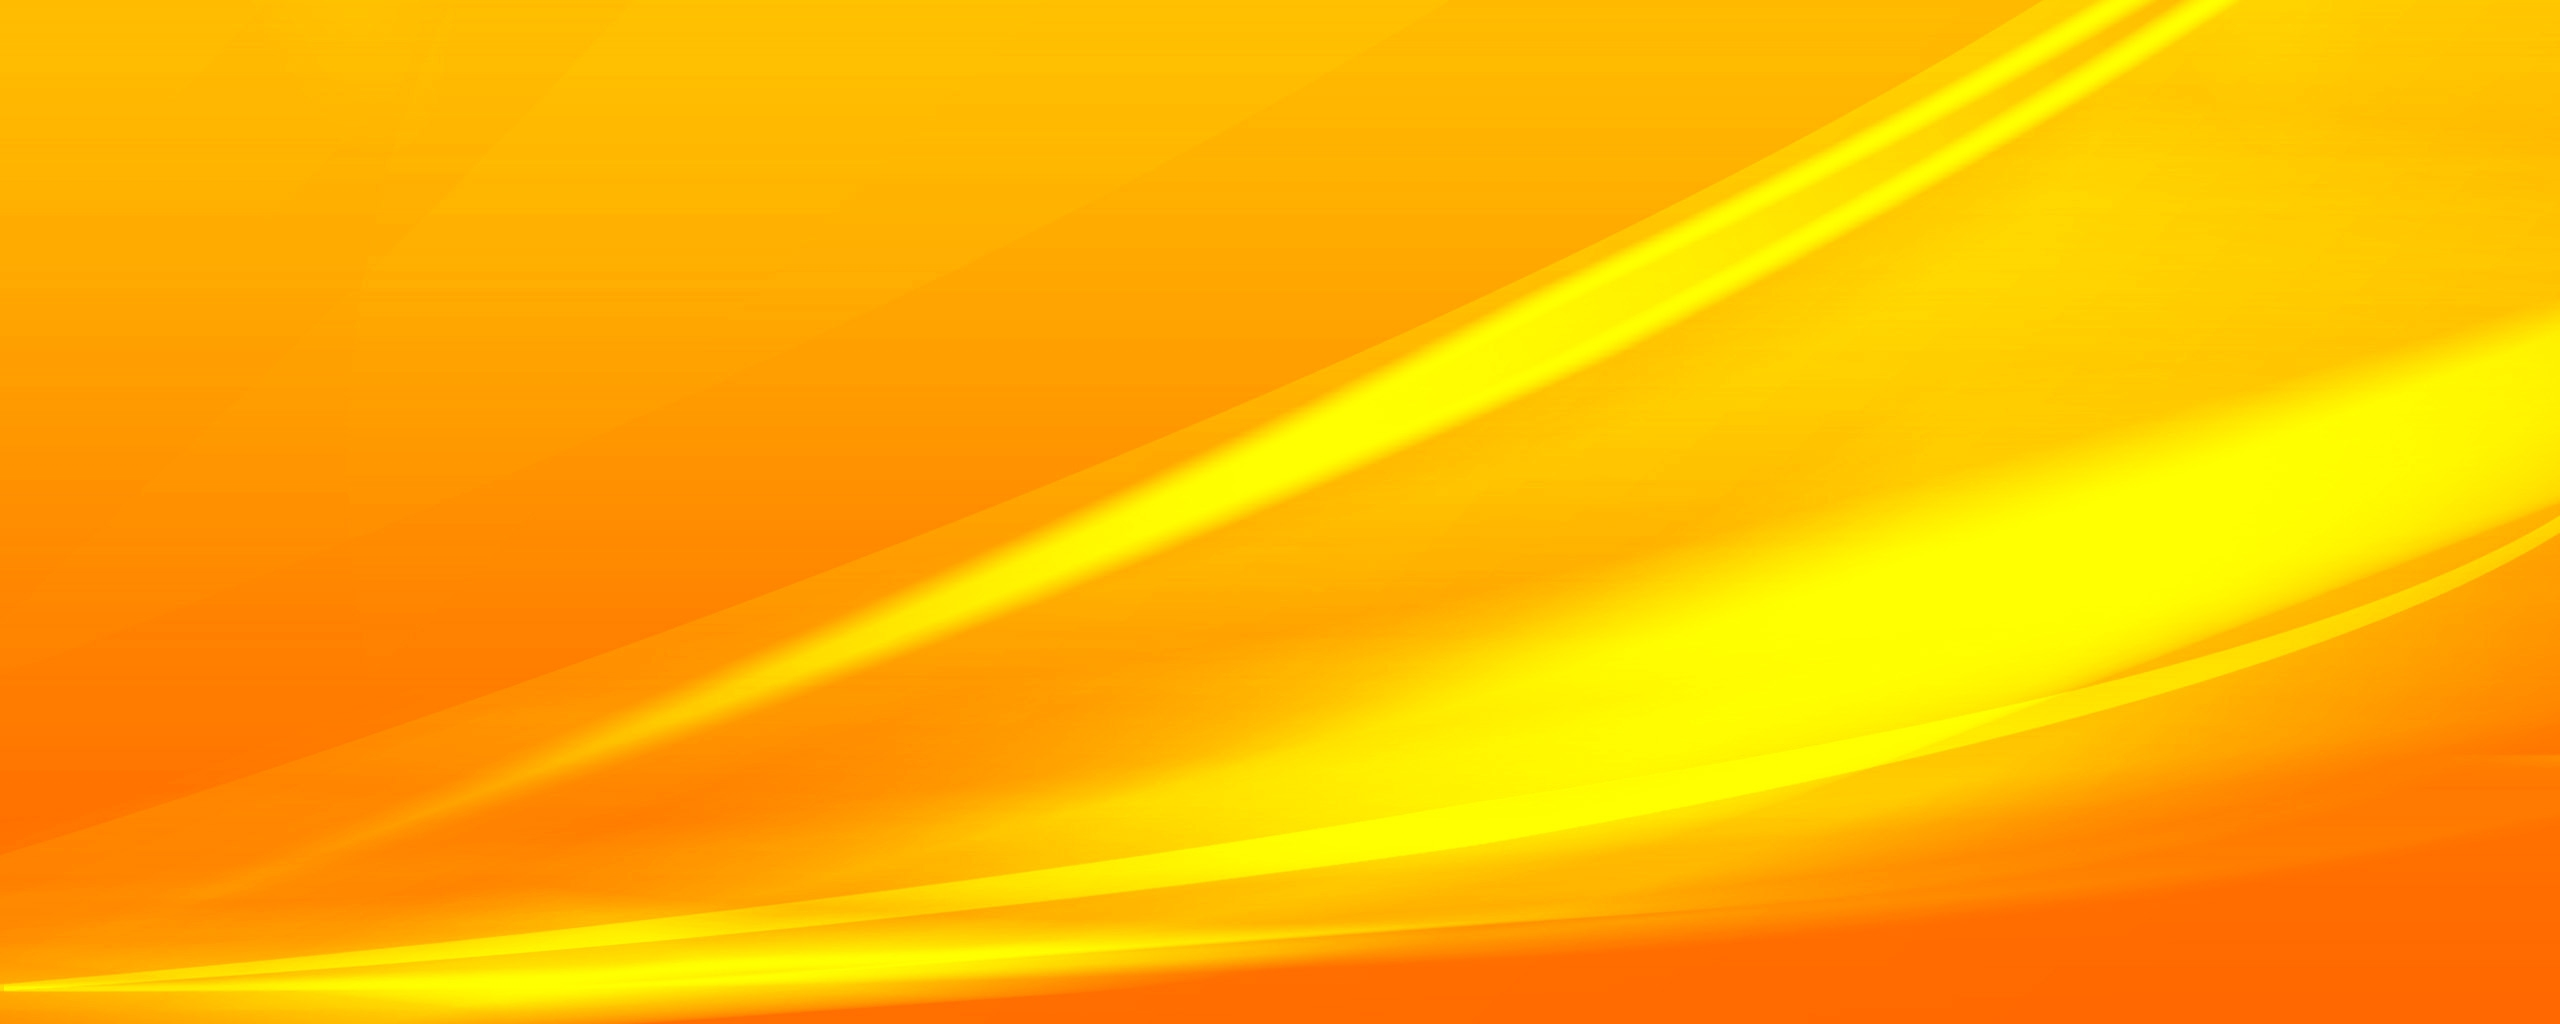 Yellow Background Image - WallpaperSafari